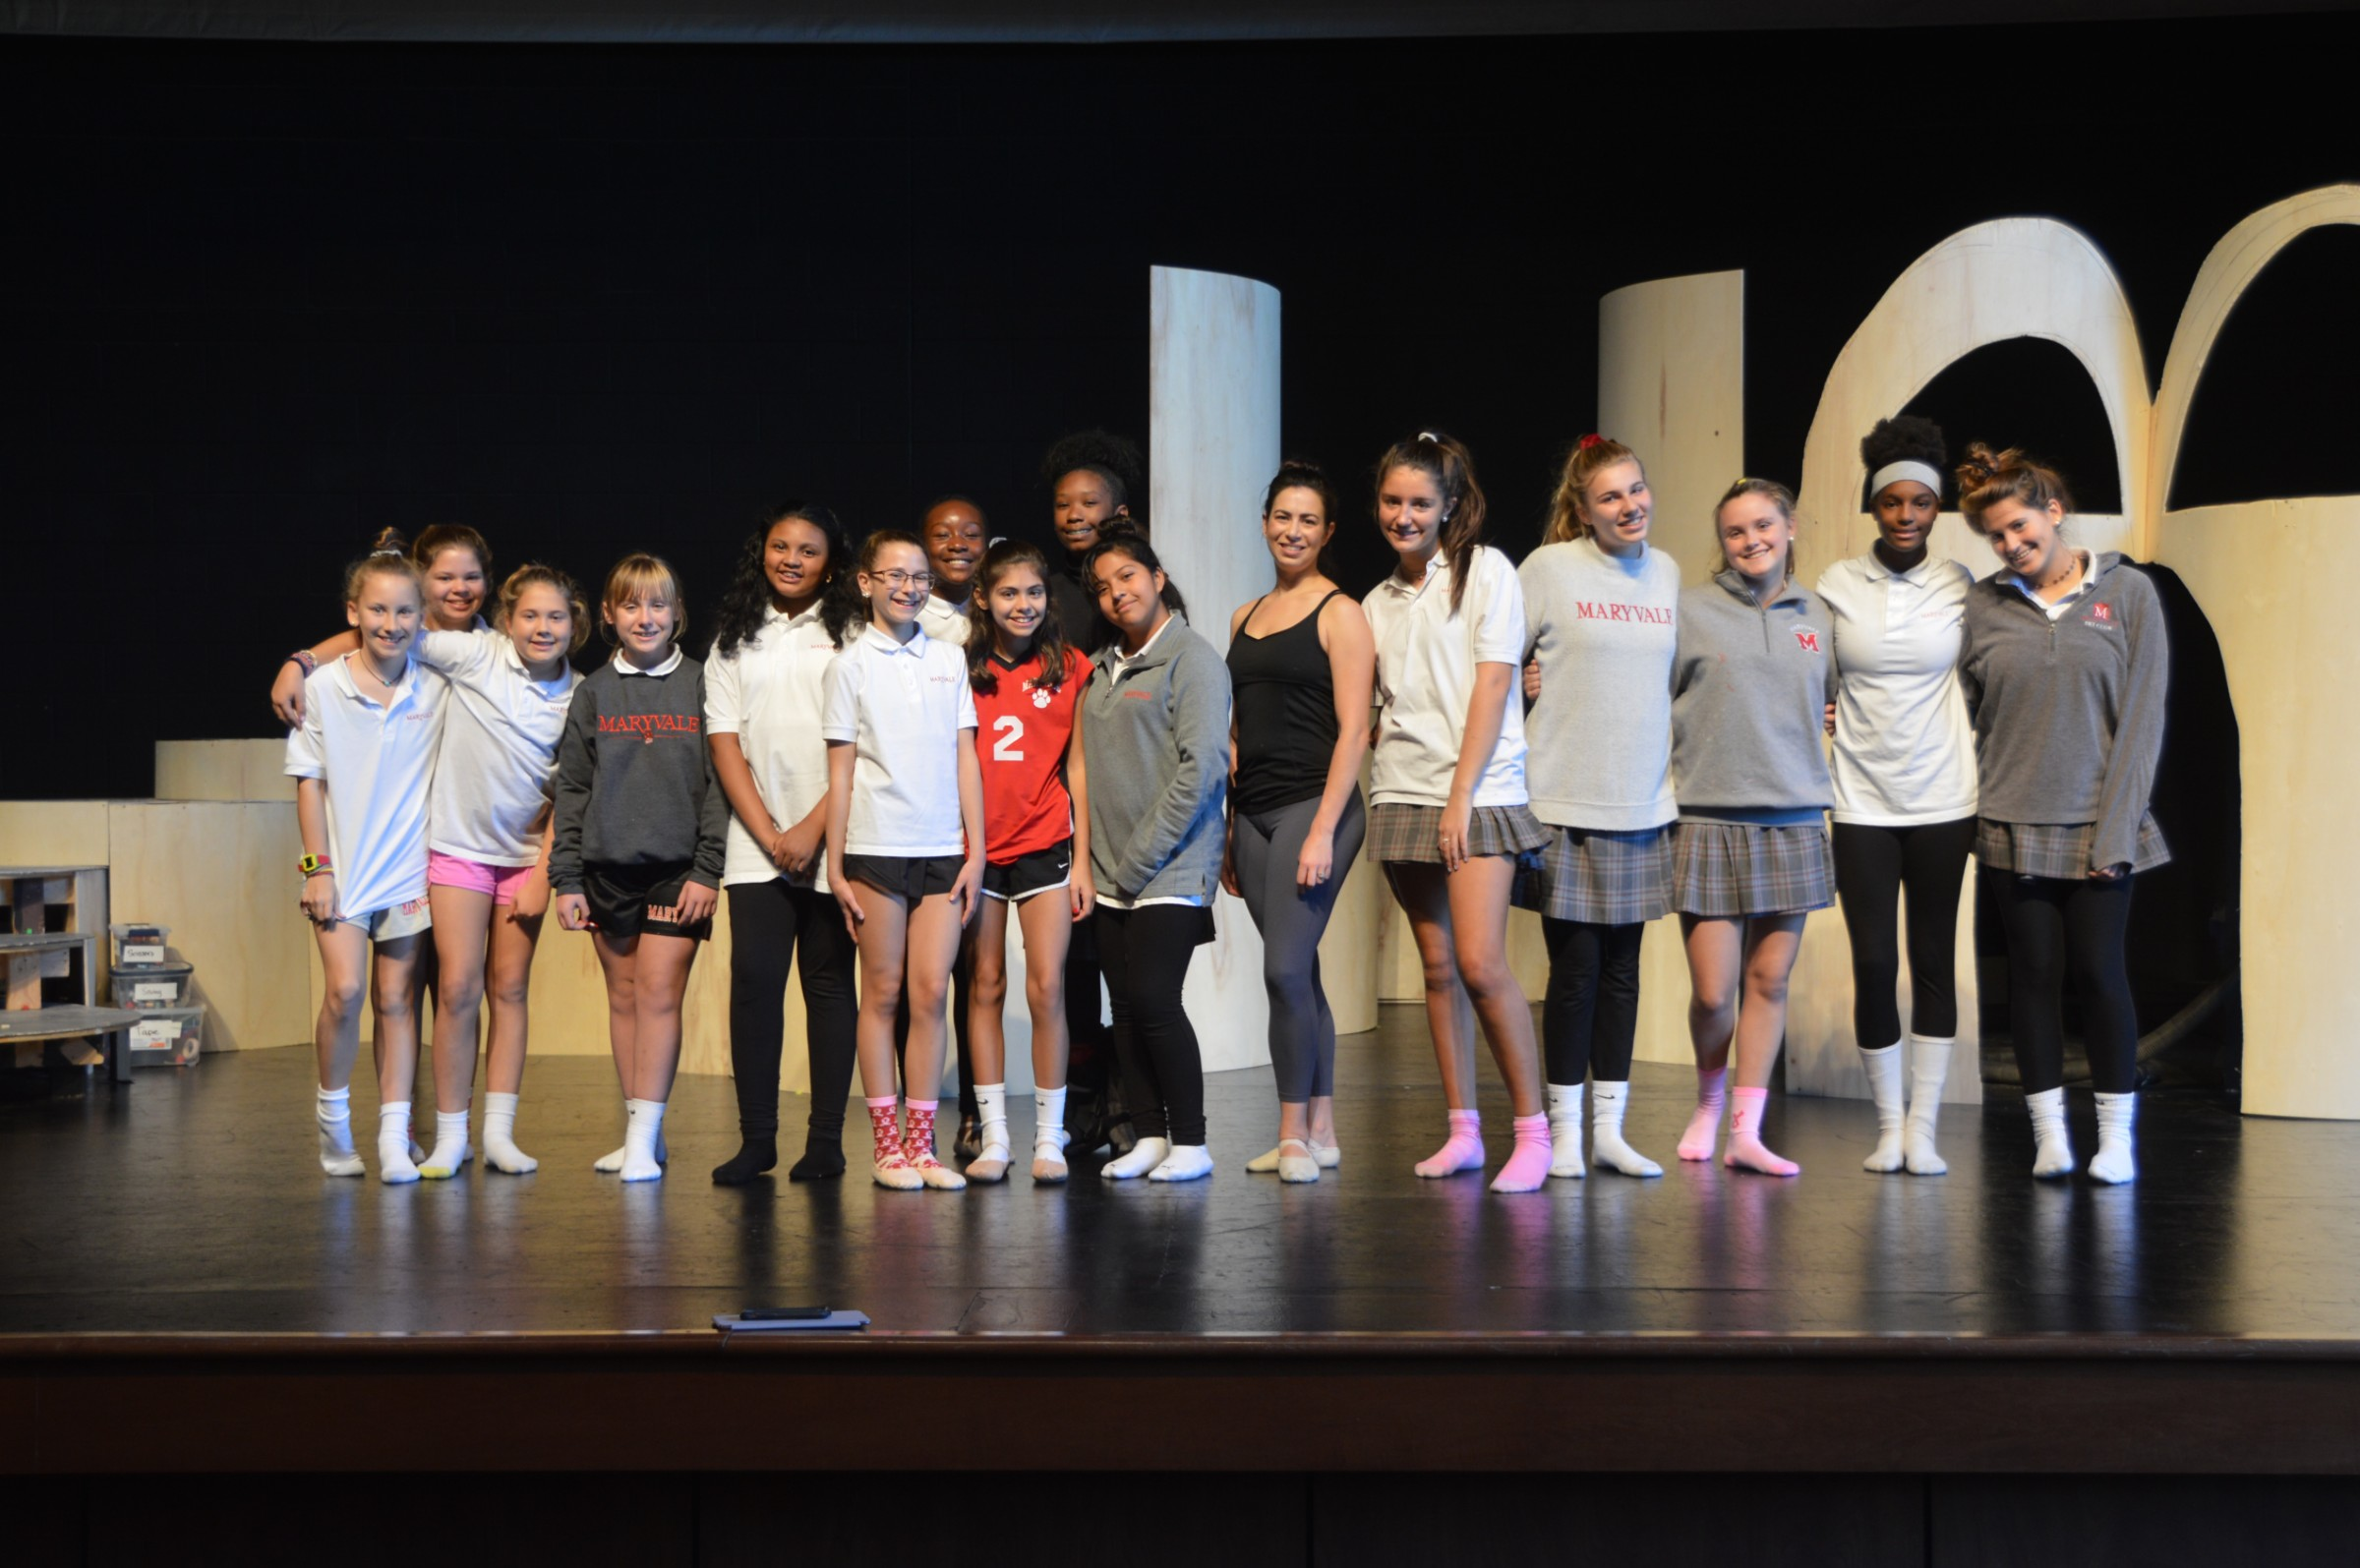 Kathryn Henschen Jacques '02 works with Maryvale dancers